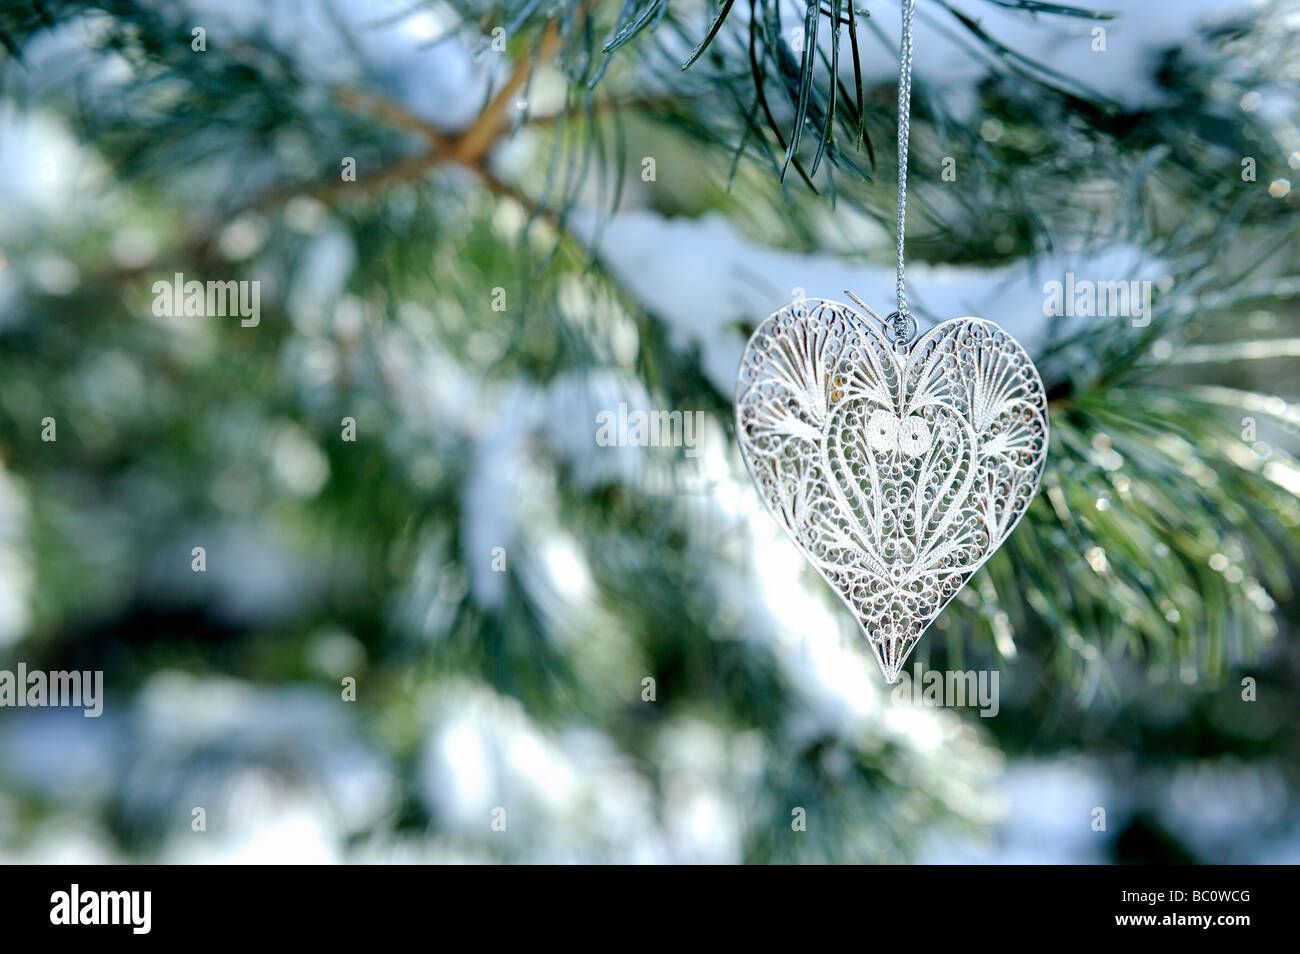 christmas-silver-heart-shaped-ornament-on-branch-of-austrian-pine-BC0WCG.jpg